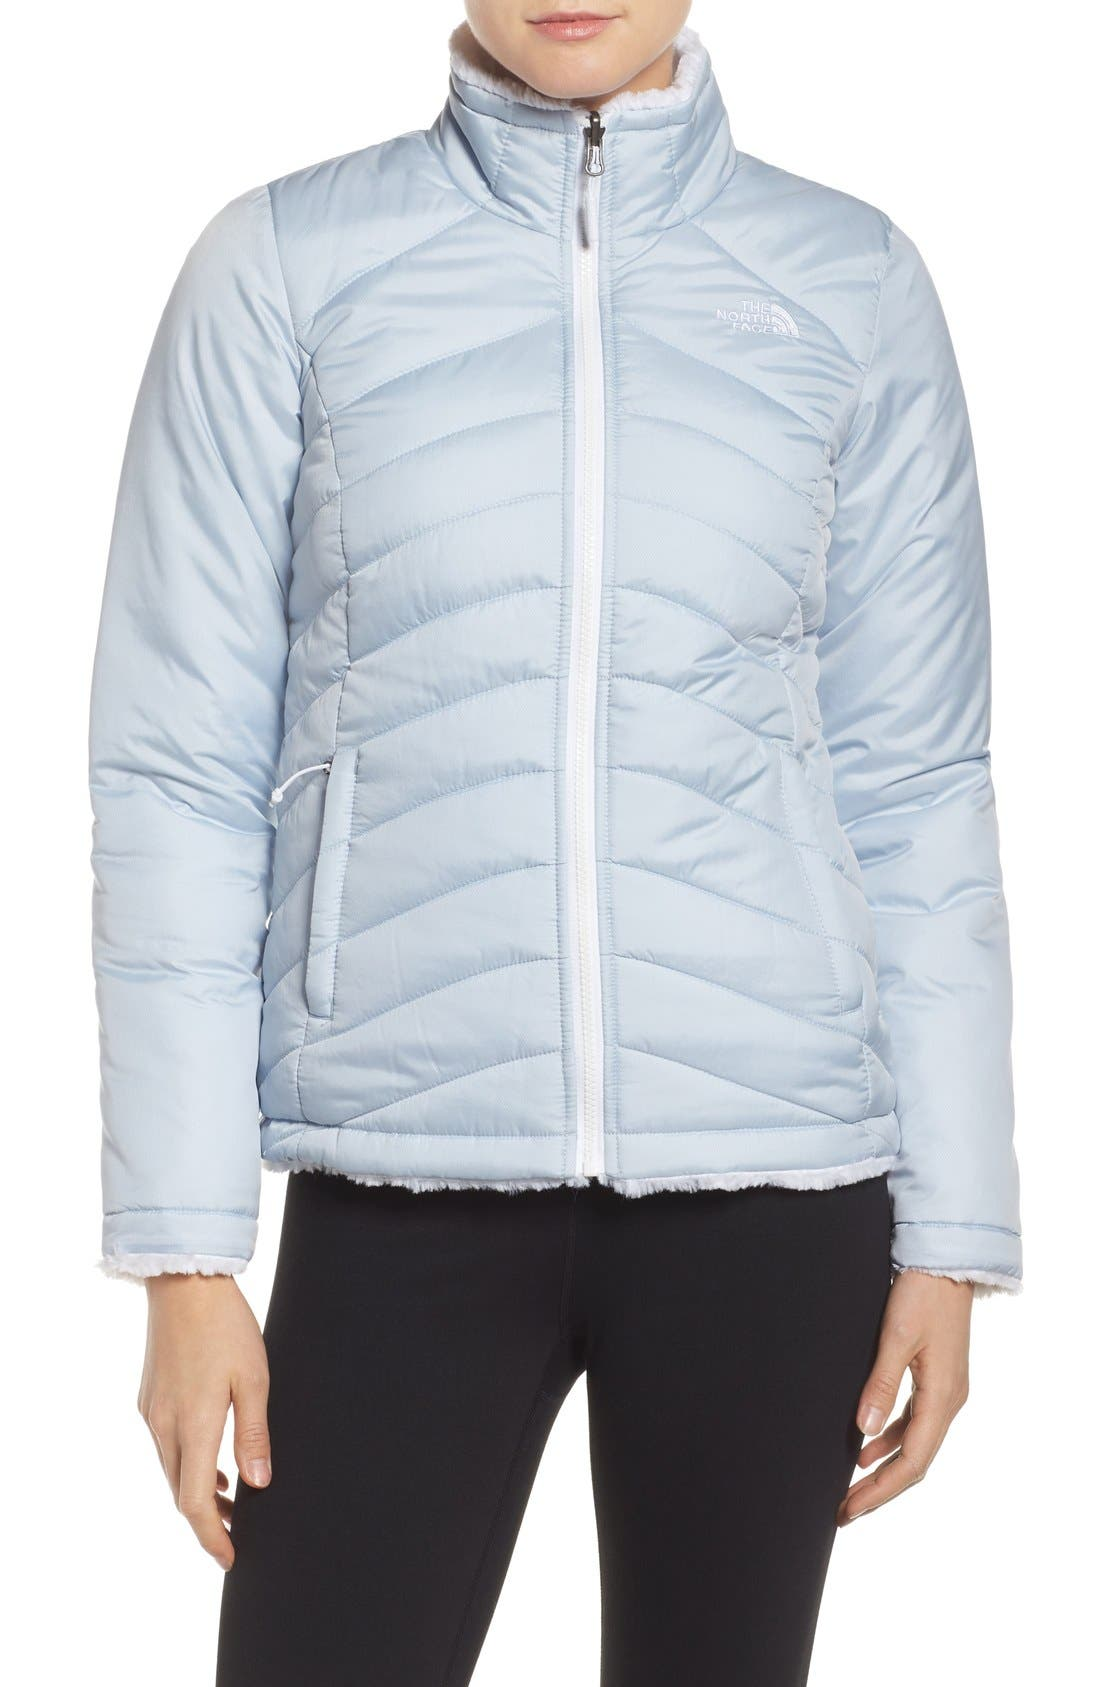 Main Image - The North Face 'Mossbud Swirl' Water Resistant Jacket